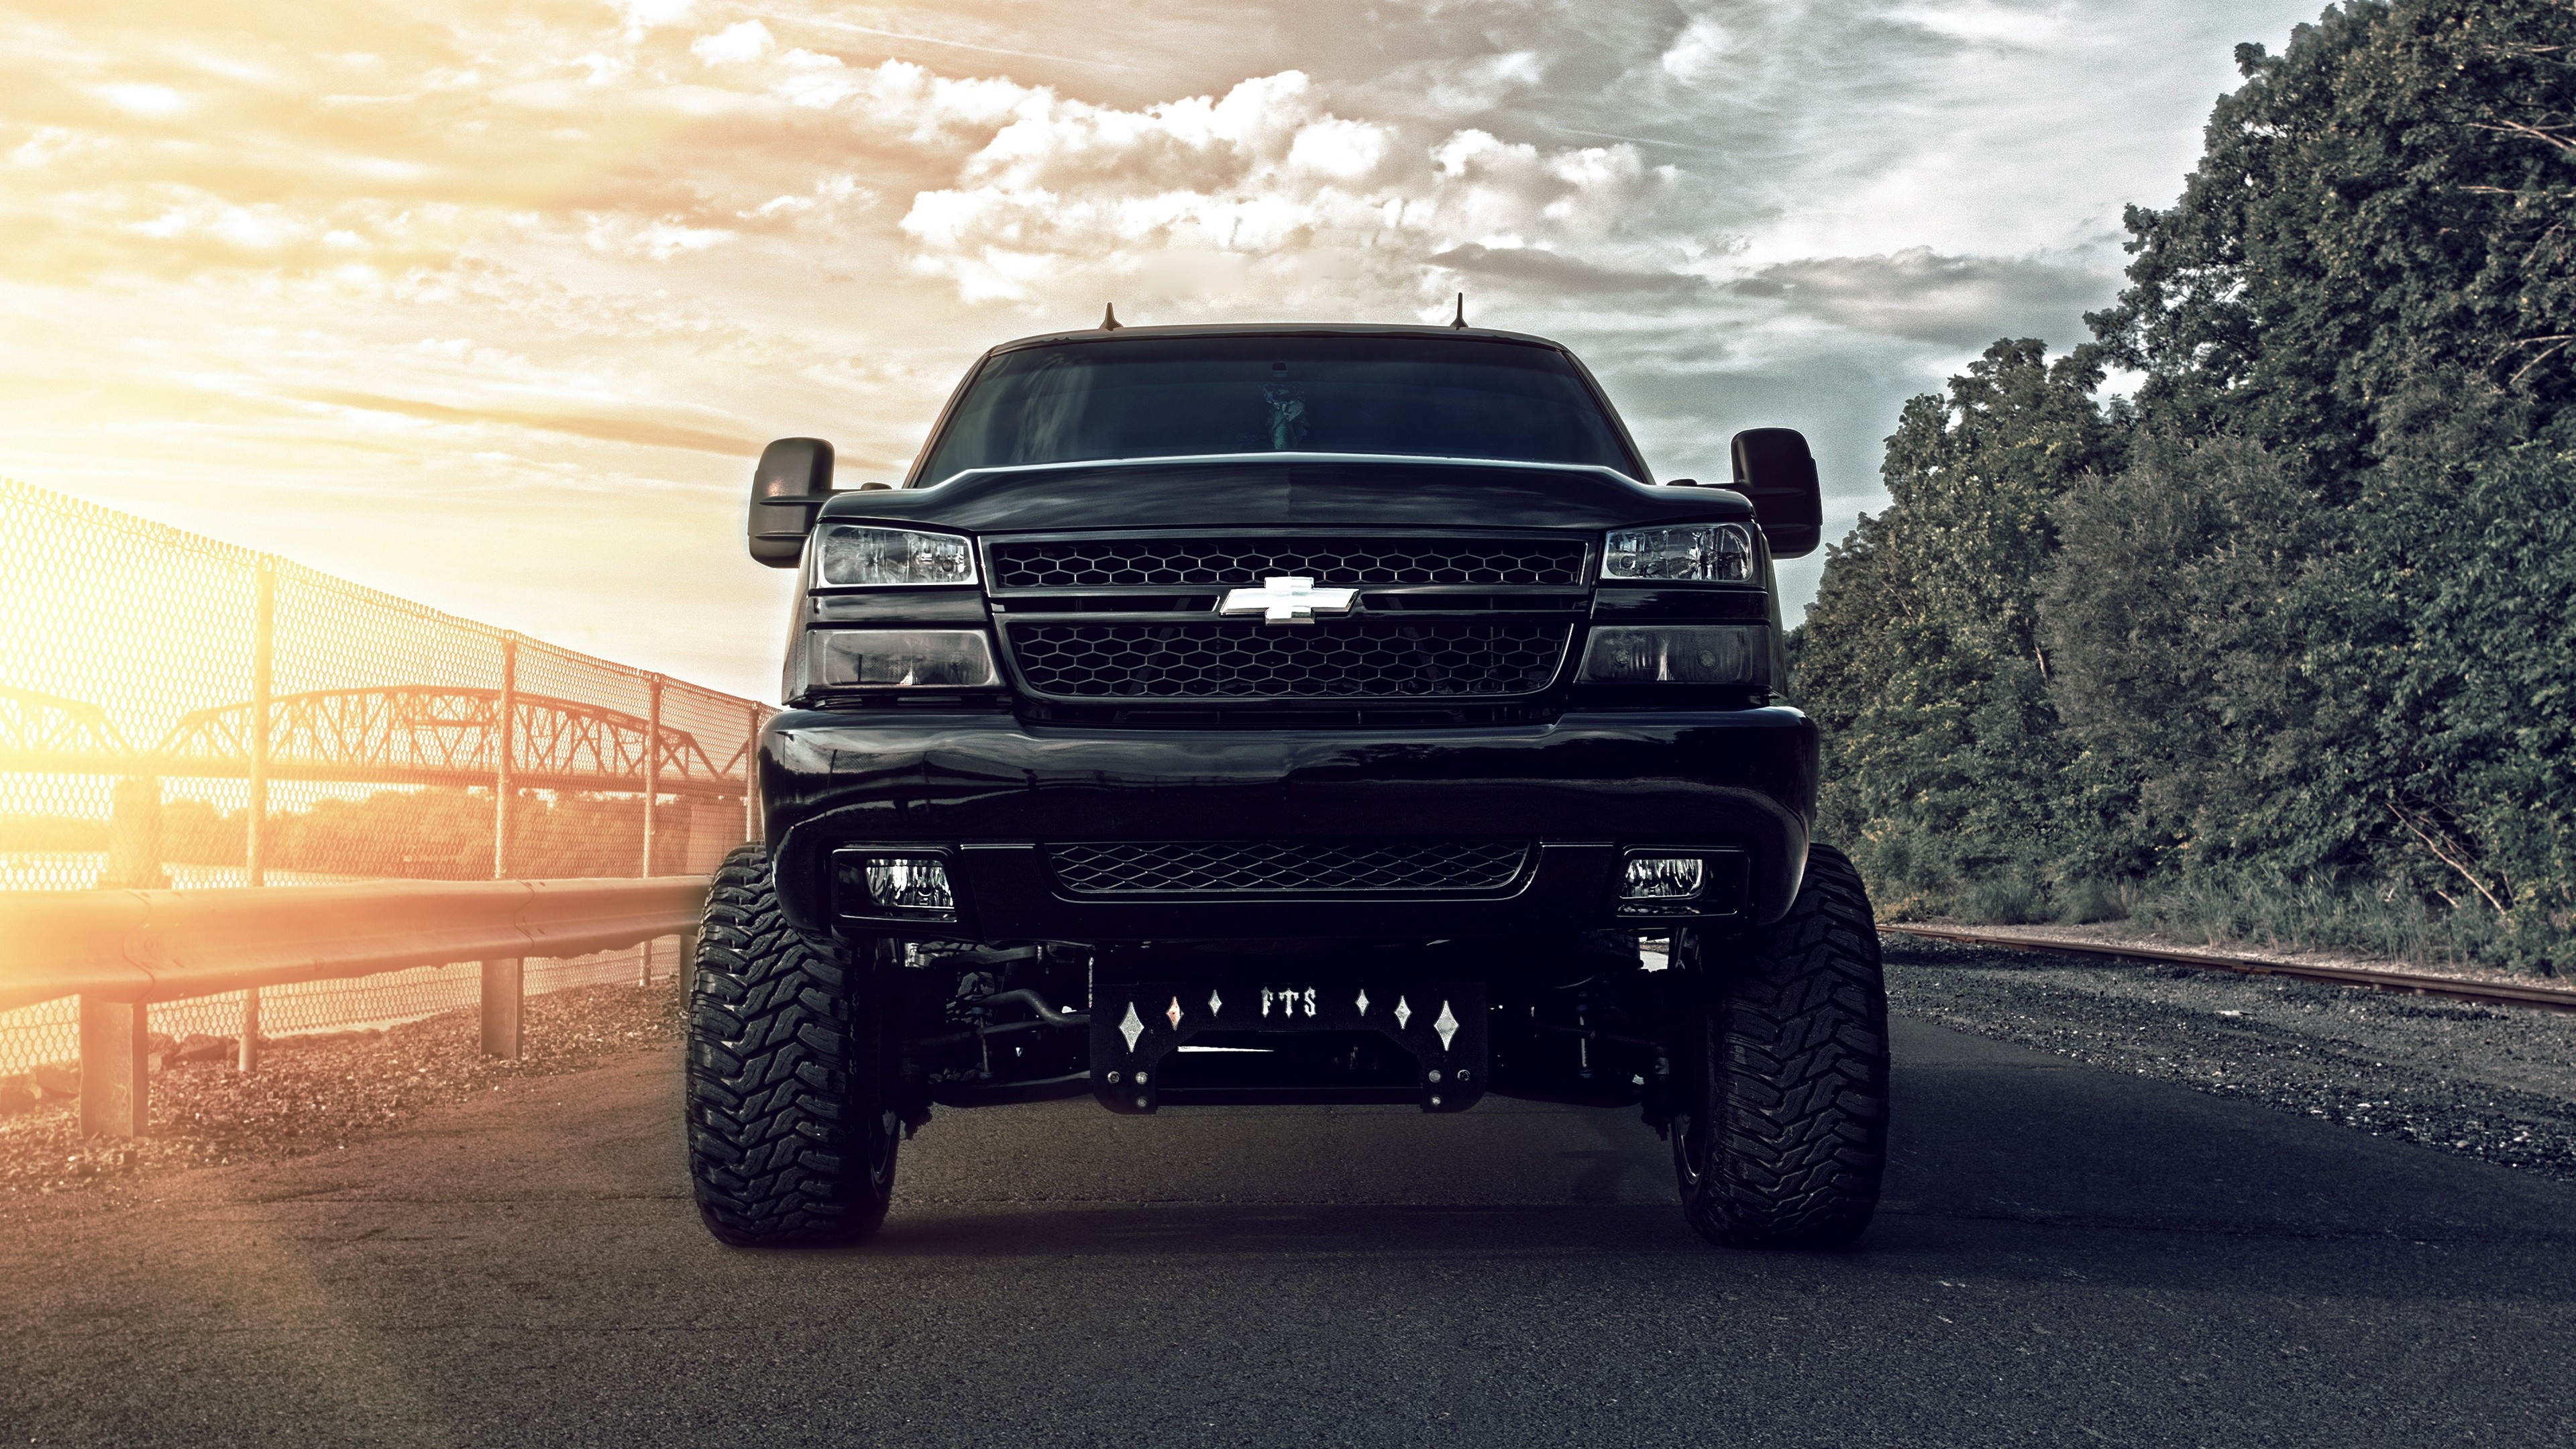 32+] Chevrolet Silverado Wallpapers on